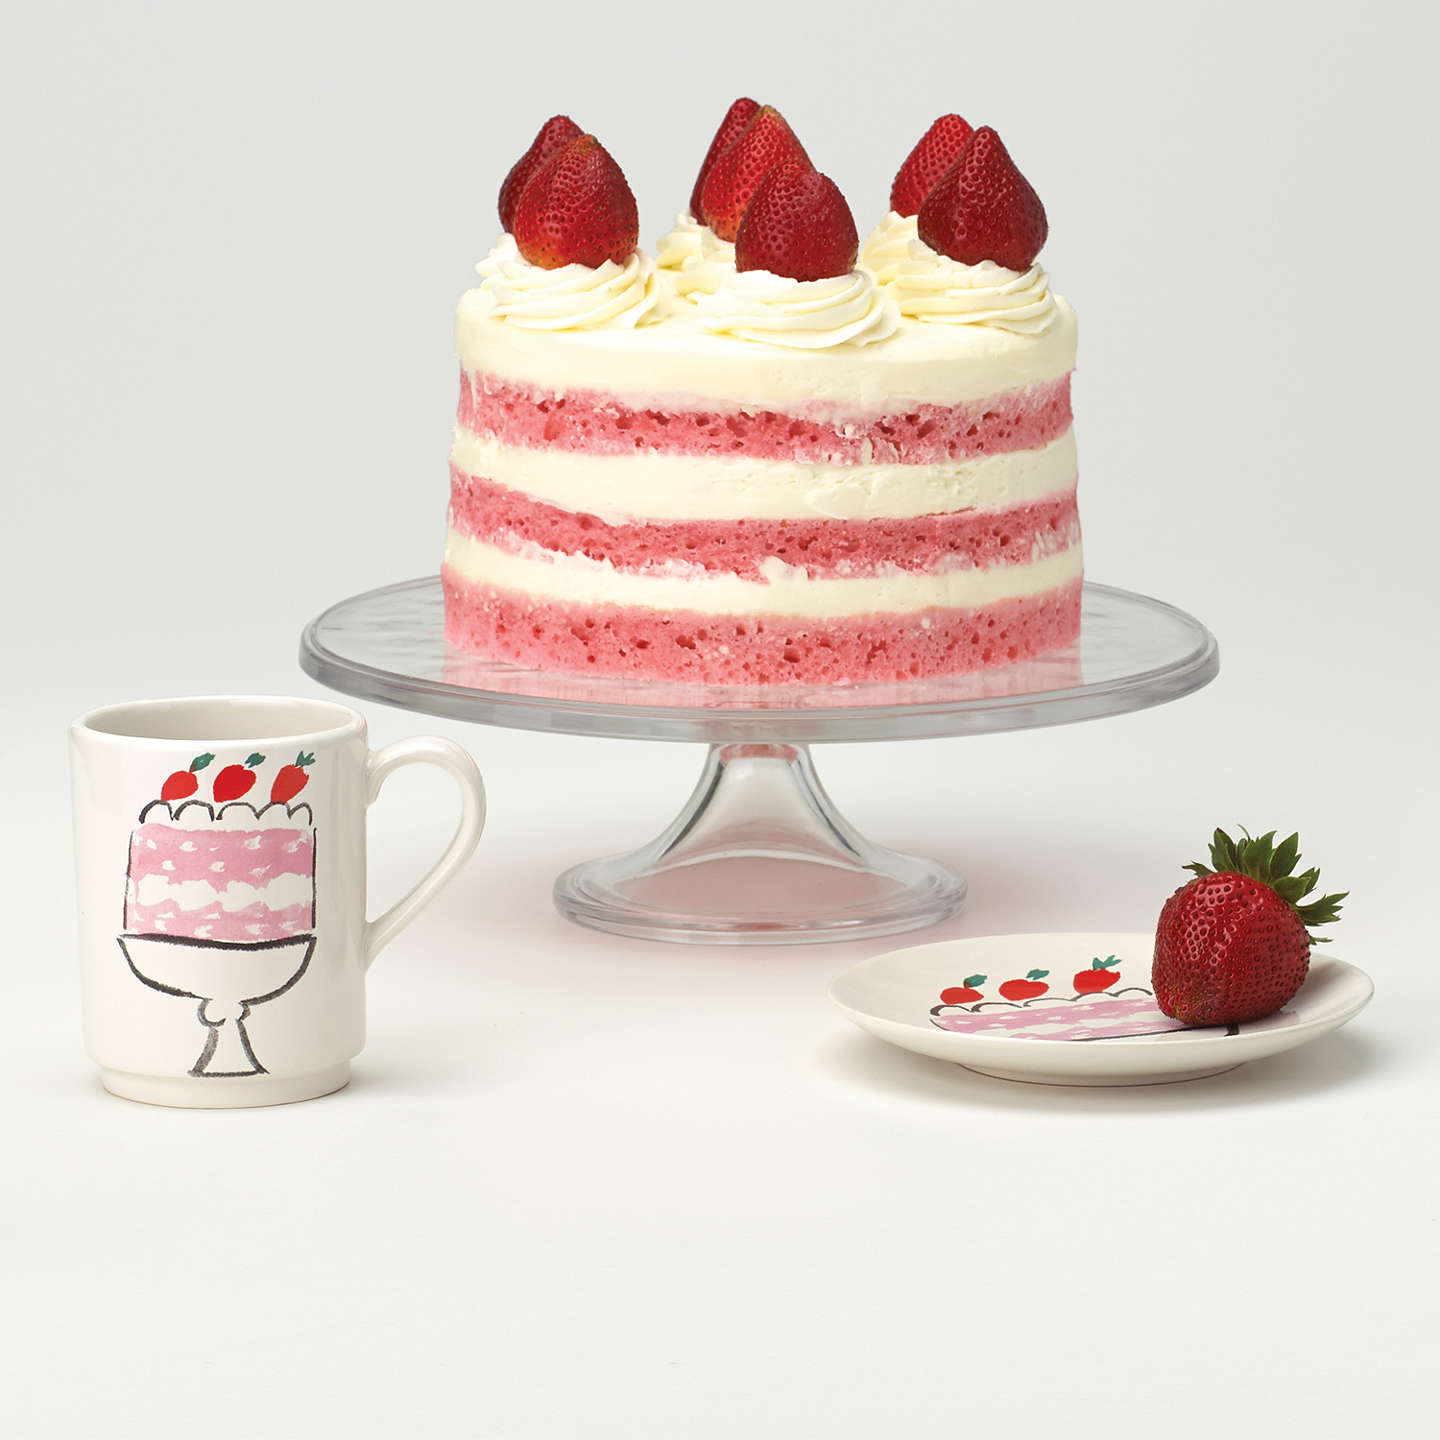 Buykate Spade New York Glass Cake Stand Online At Johnlewiscom